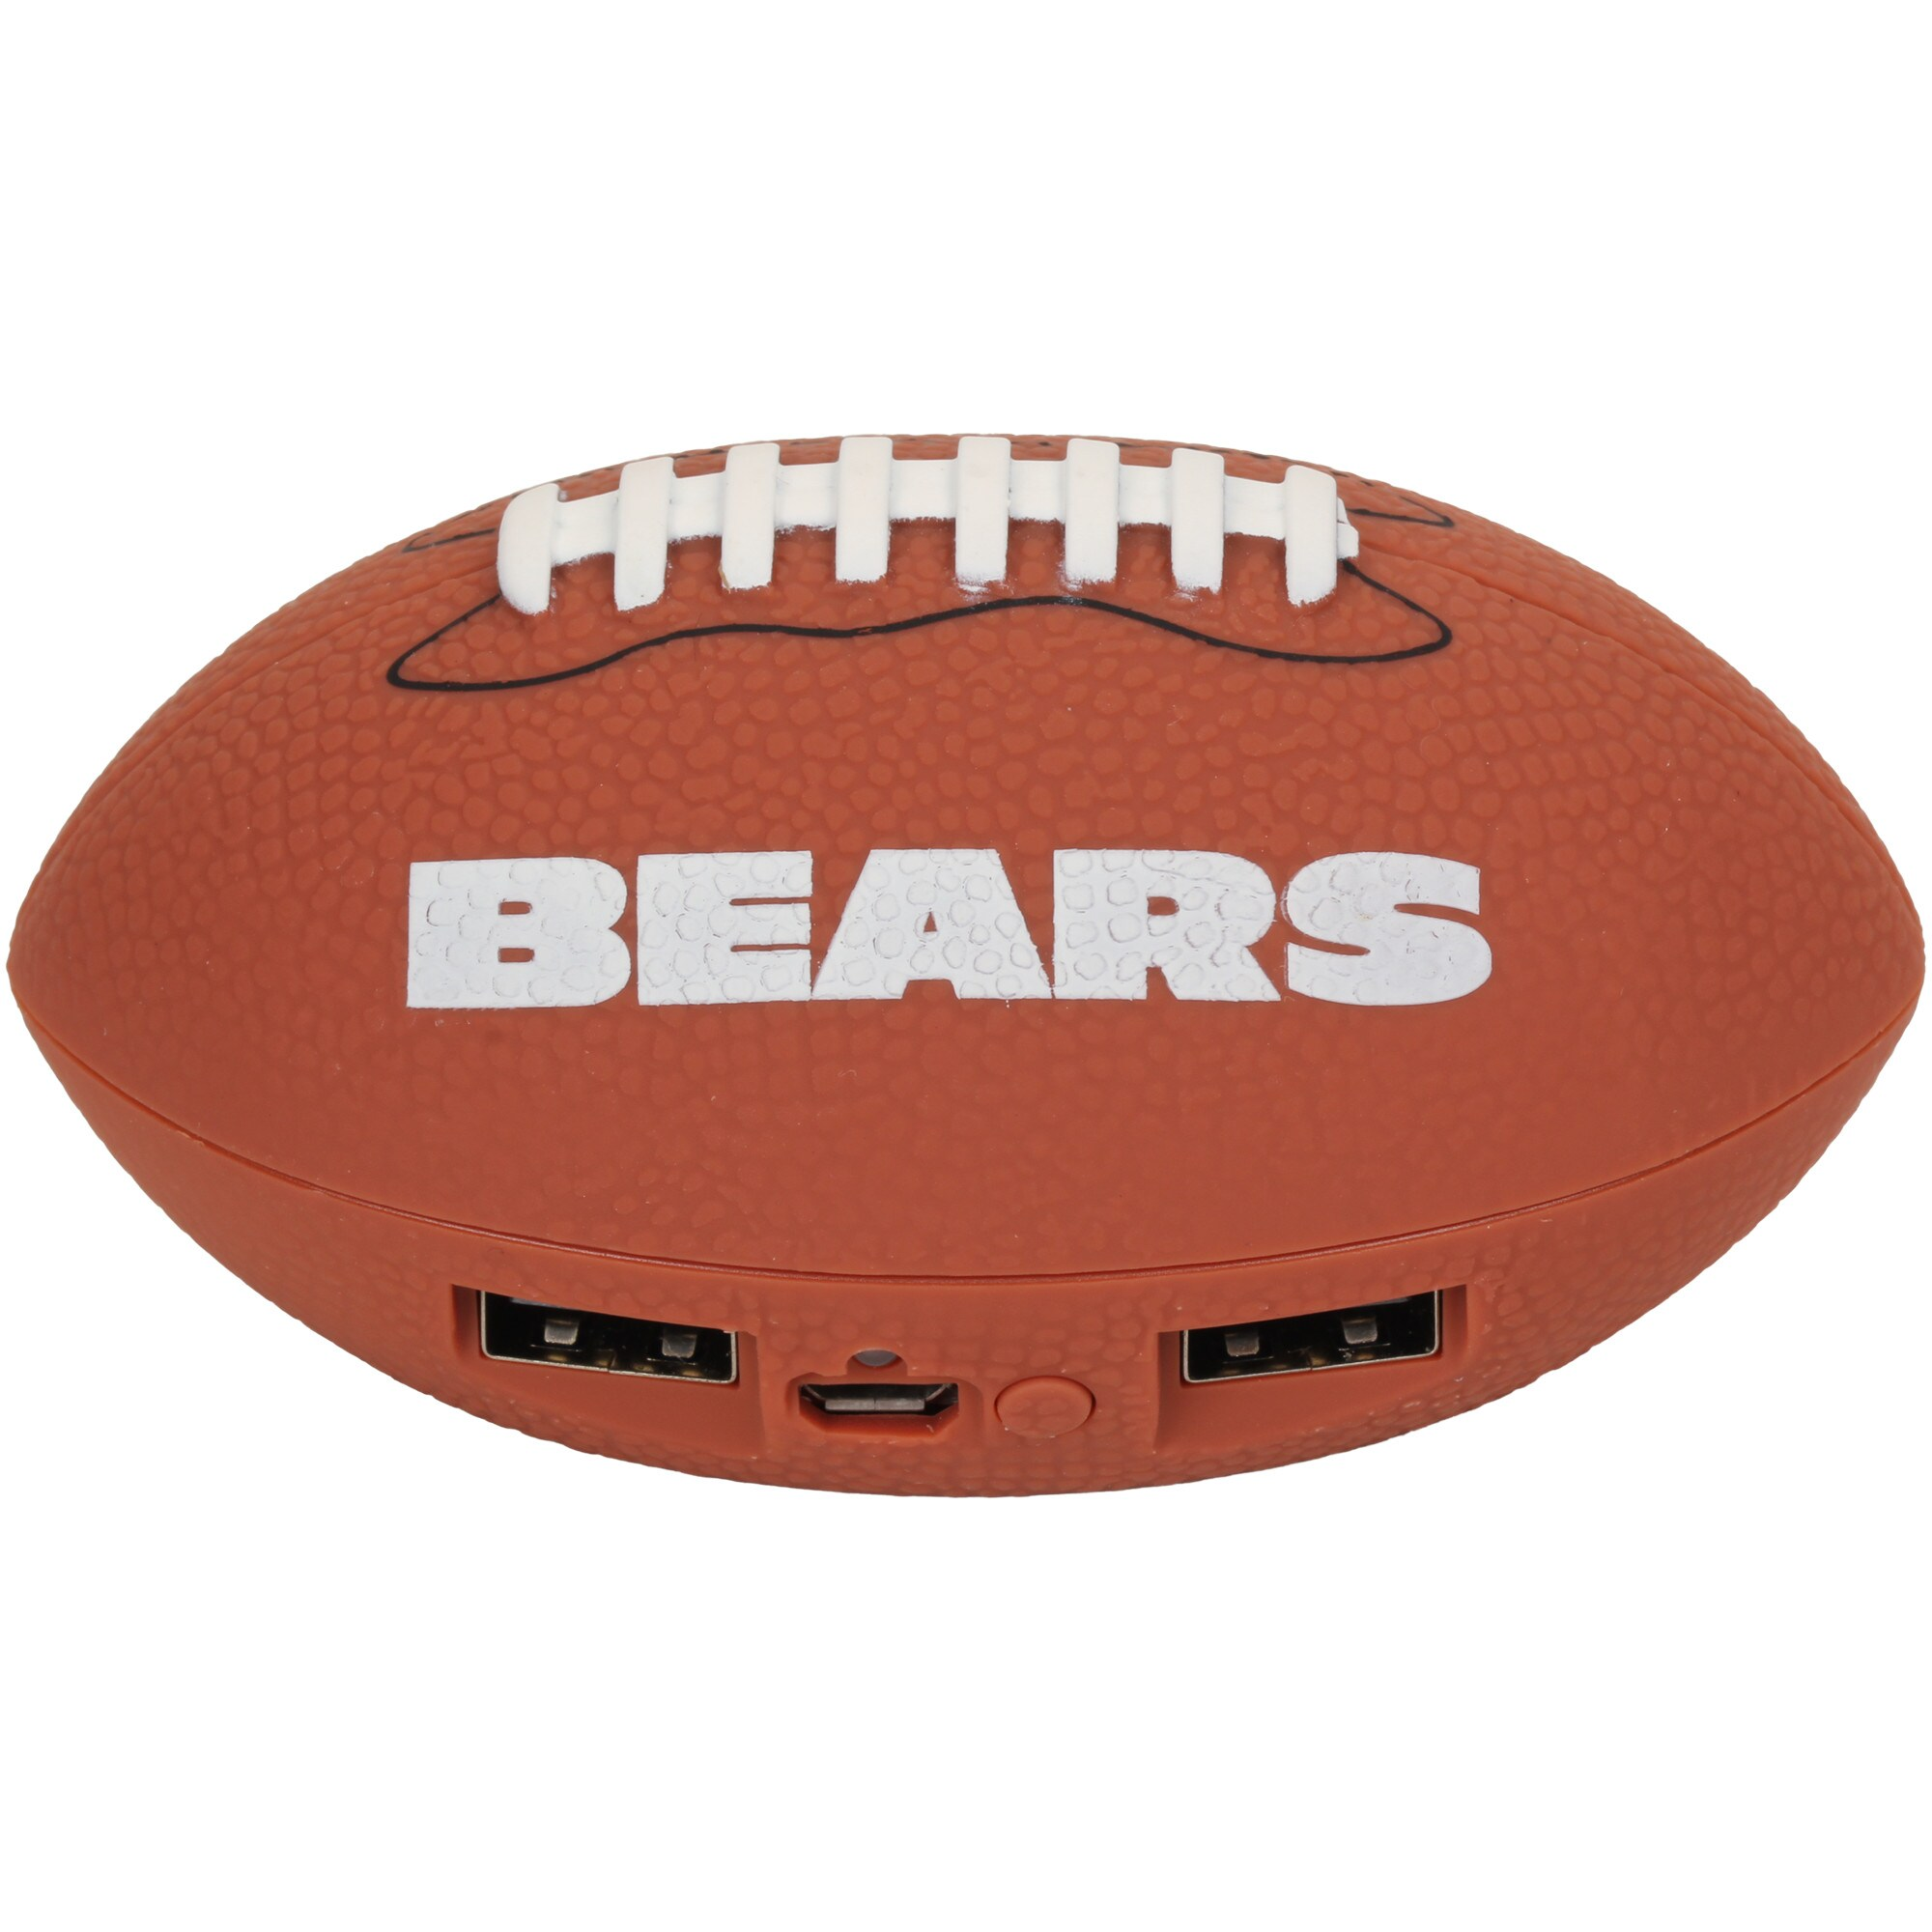 Chicago Bears Football Cell Phone Charger